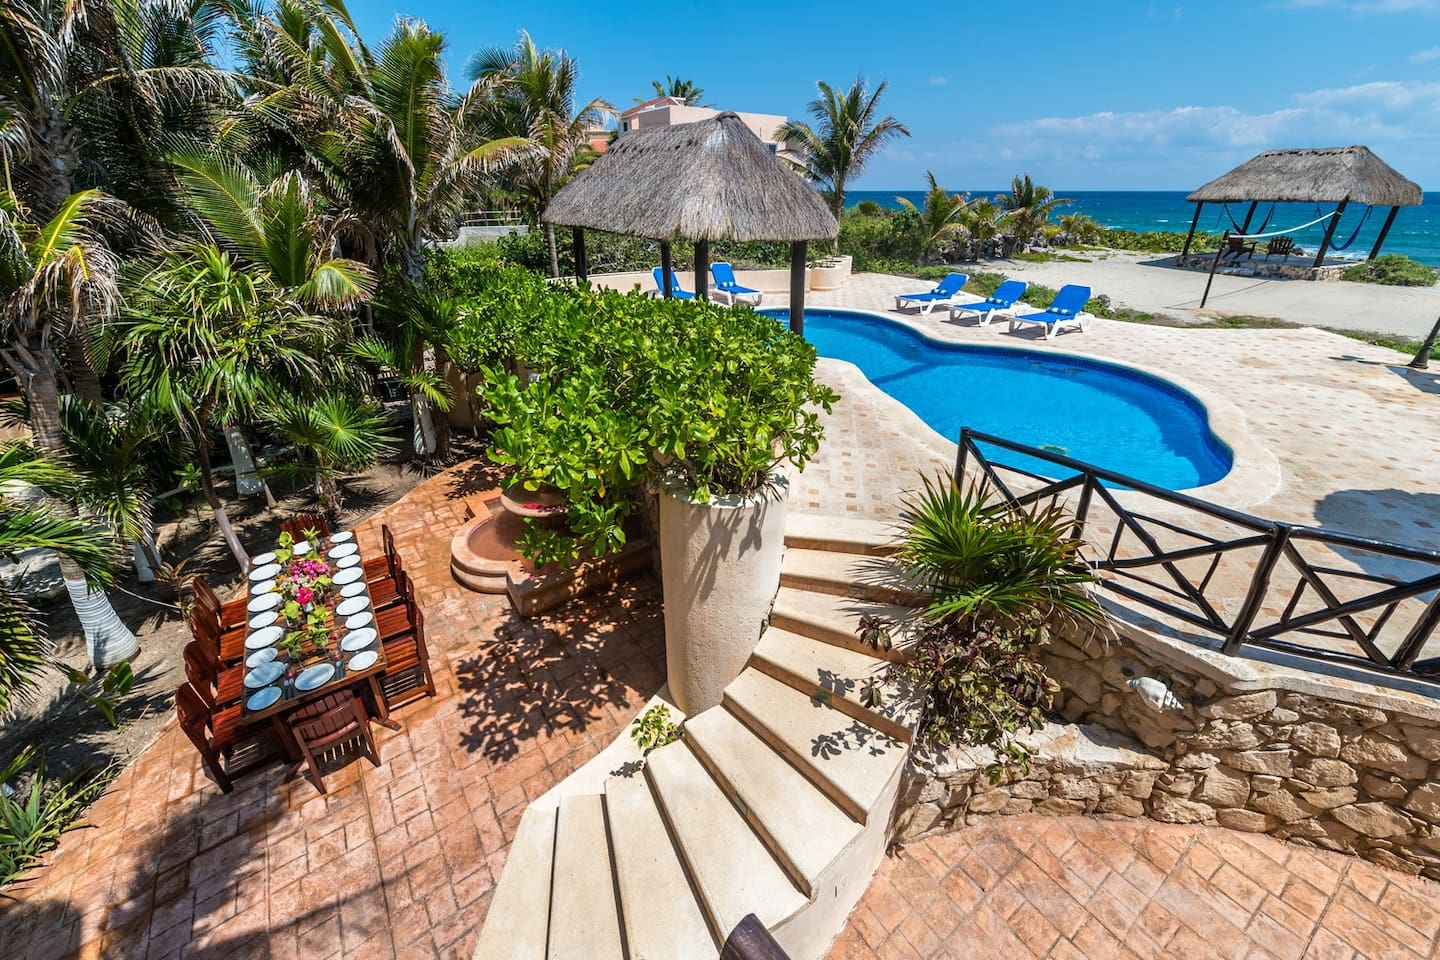 Casa Iguana exterior.  A perfect oceanside playground located in Akumal.  Two sandy beaches are a 5-minute walk from the property.